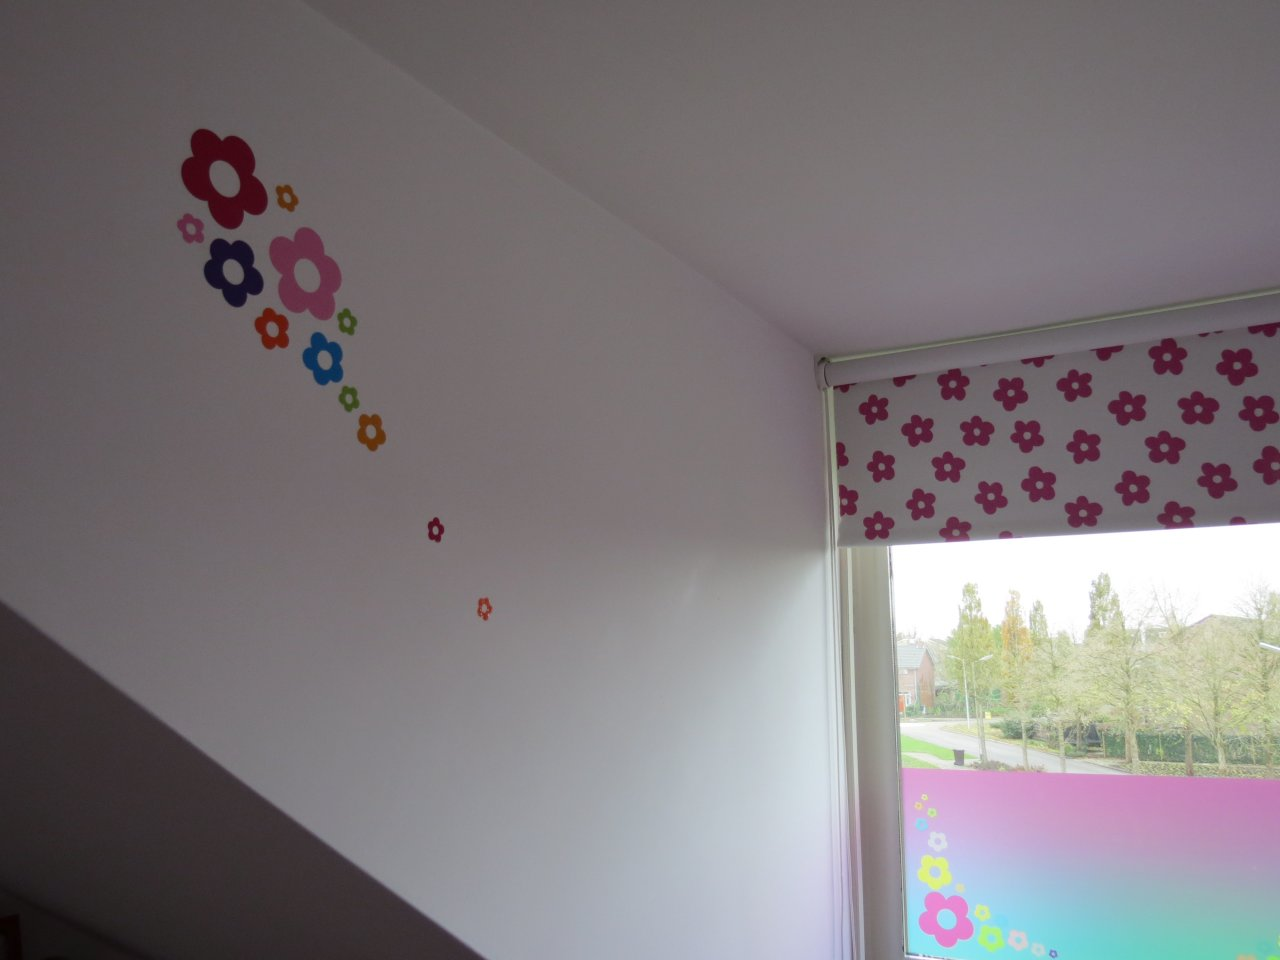 Kinderkamer Colors : kinderkamer6-full-color-folie-print-muursticker8 ...